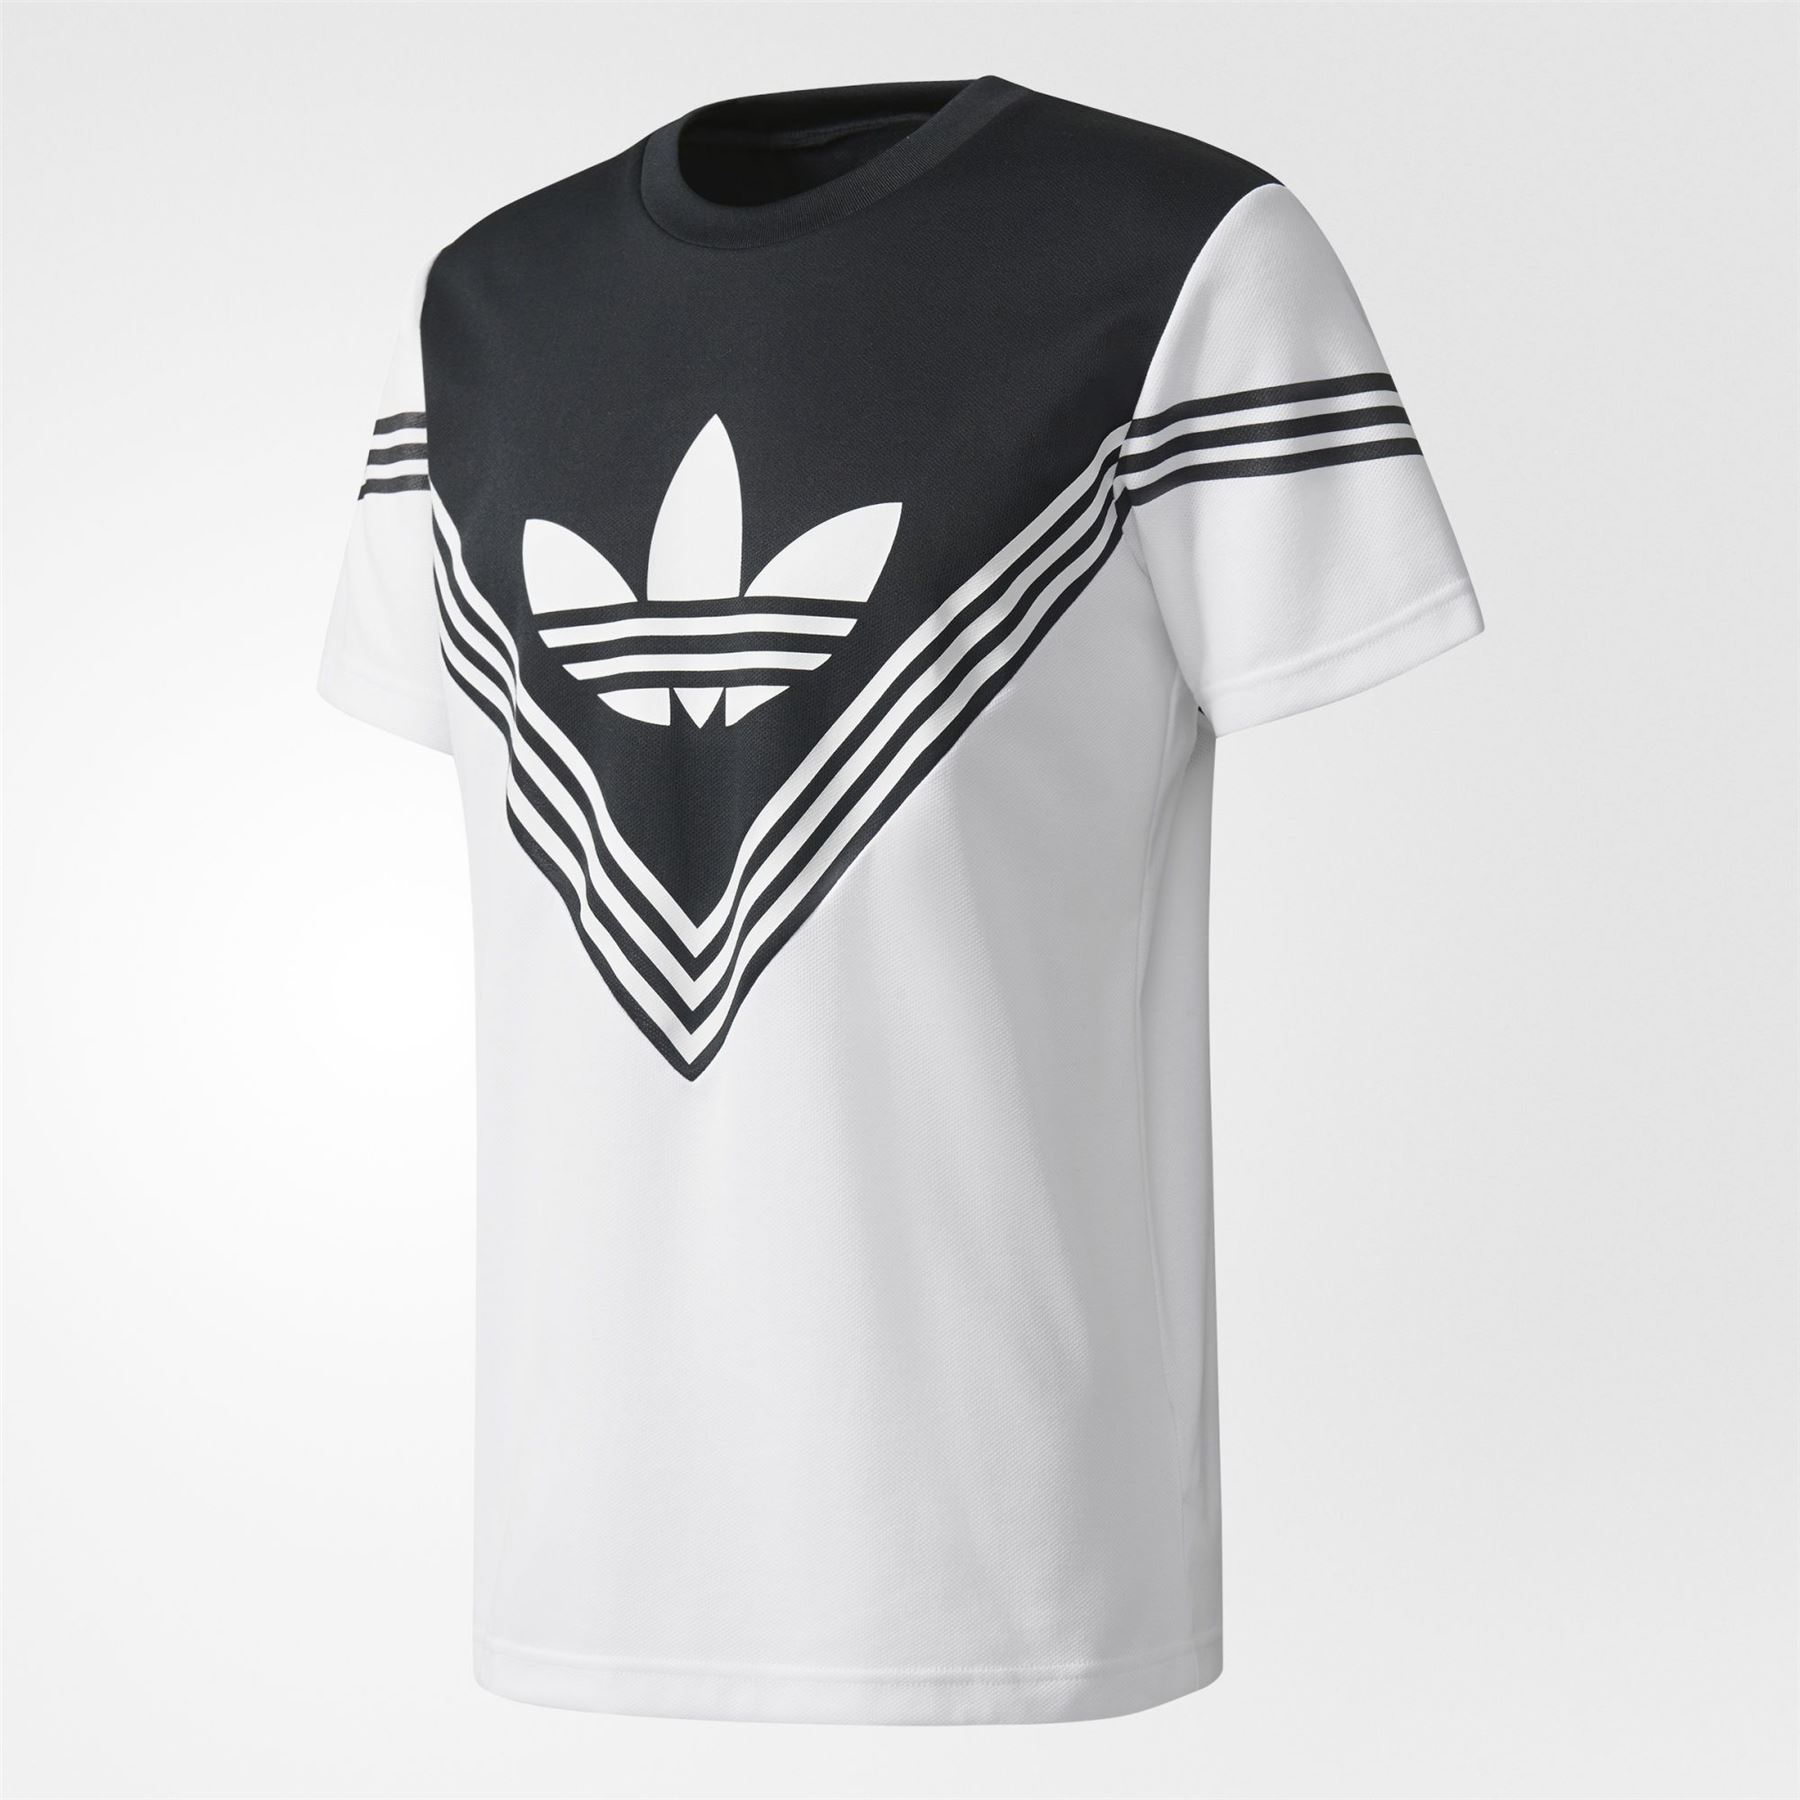 Details about adidas ORIGINALS X MOUNTAINEERING FOOTBALL JERSEY T SHIRT MEN'S RETRO VINATGE